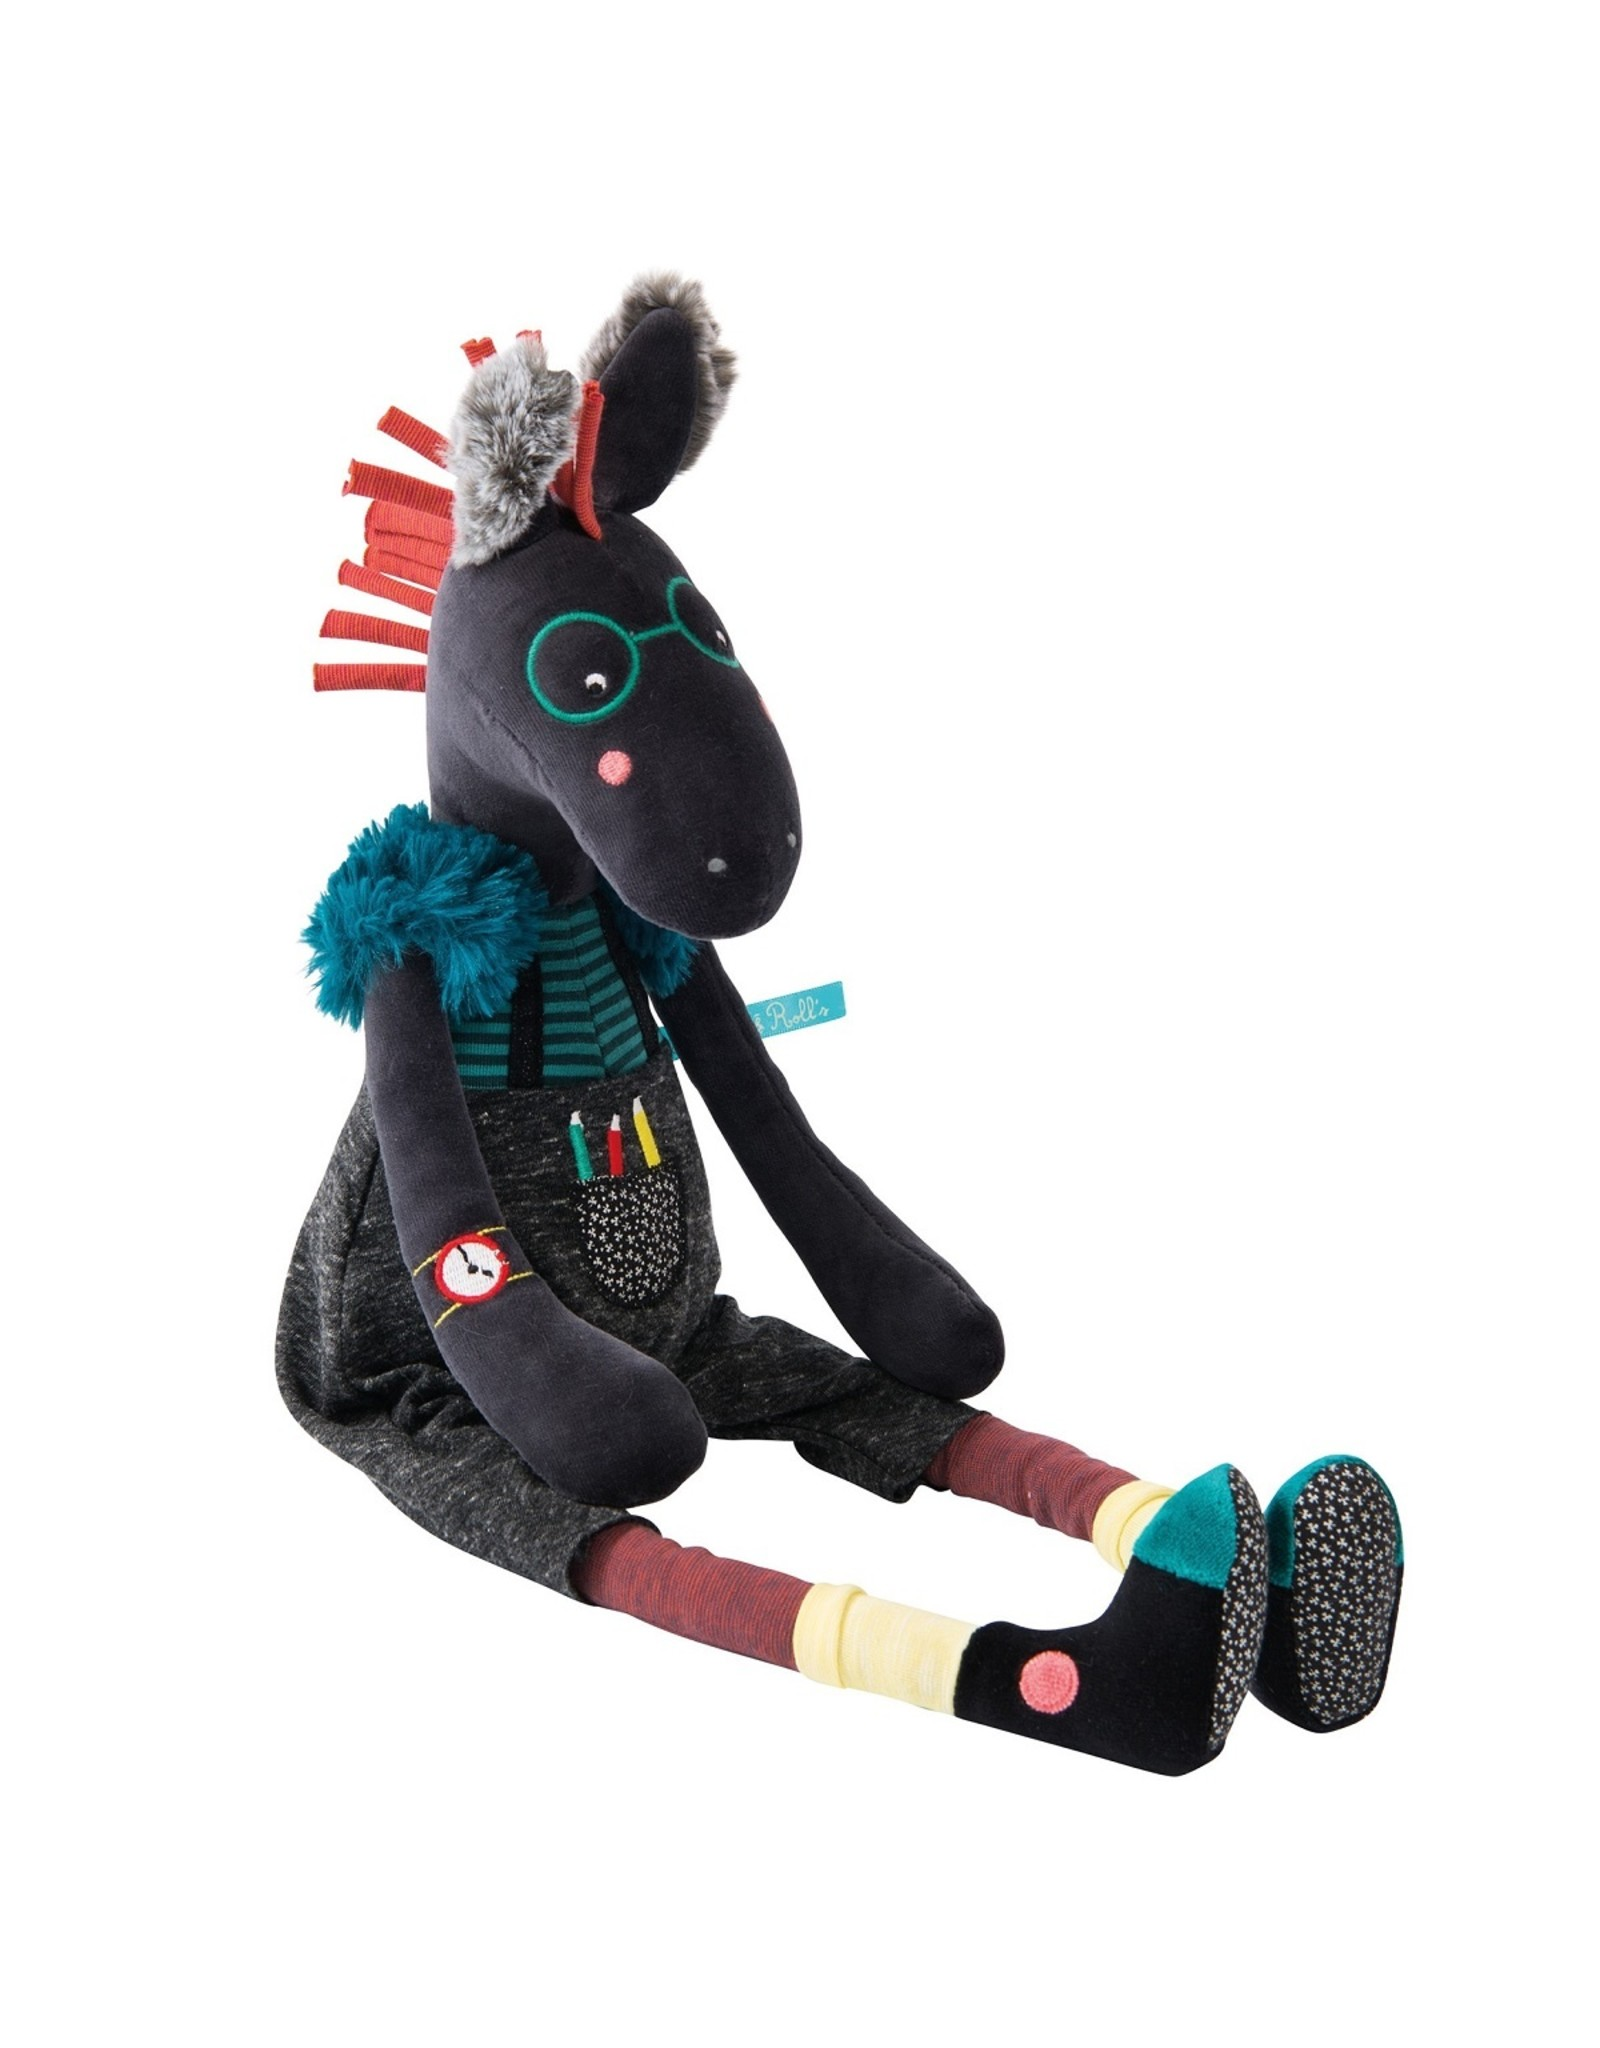 Moulin Roty Broc' & Rolls - Lucien the Horse